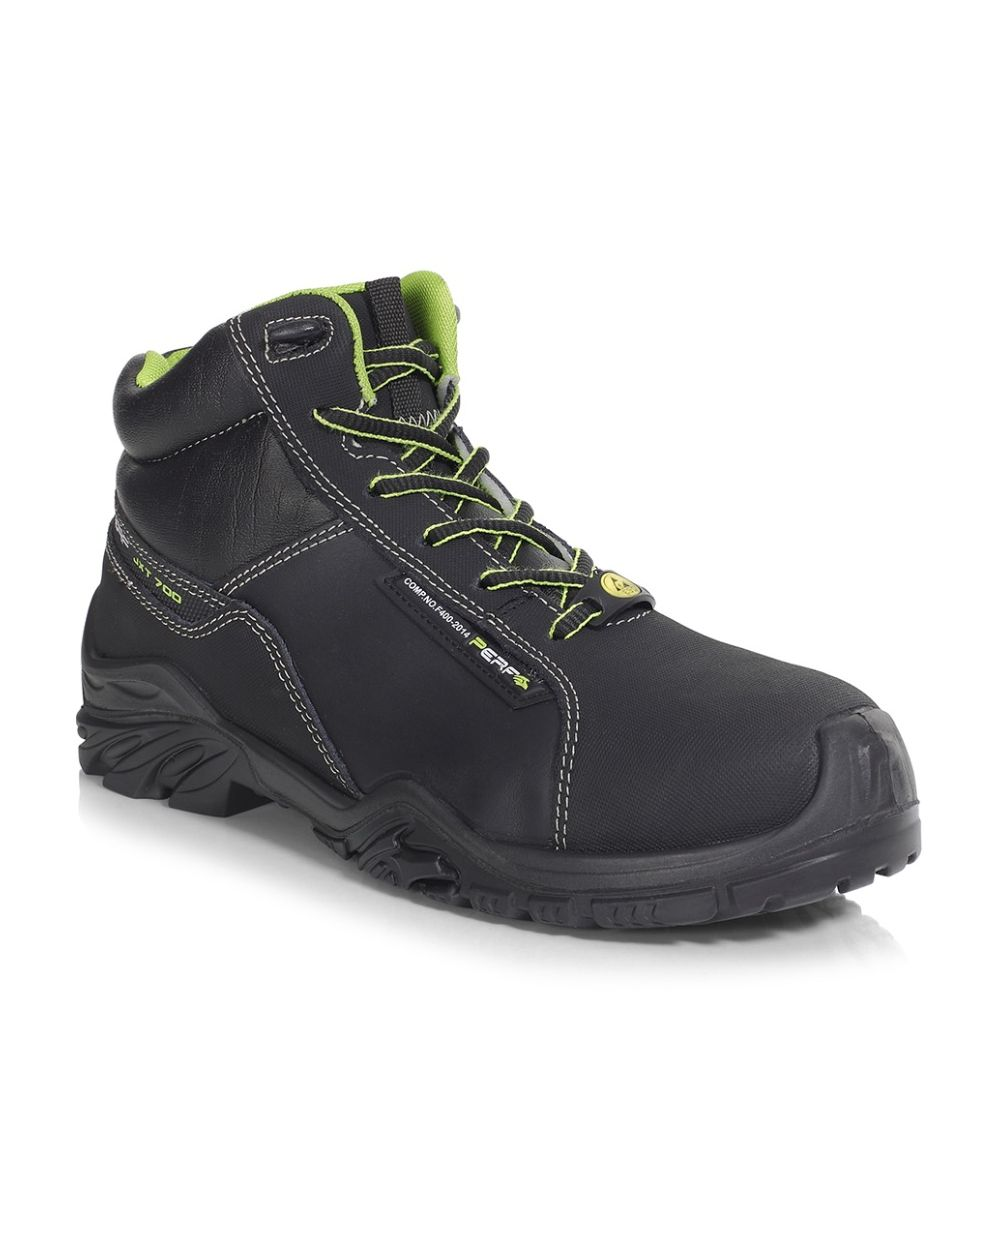 Endurance High - ESD Safety Hiker